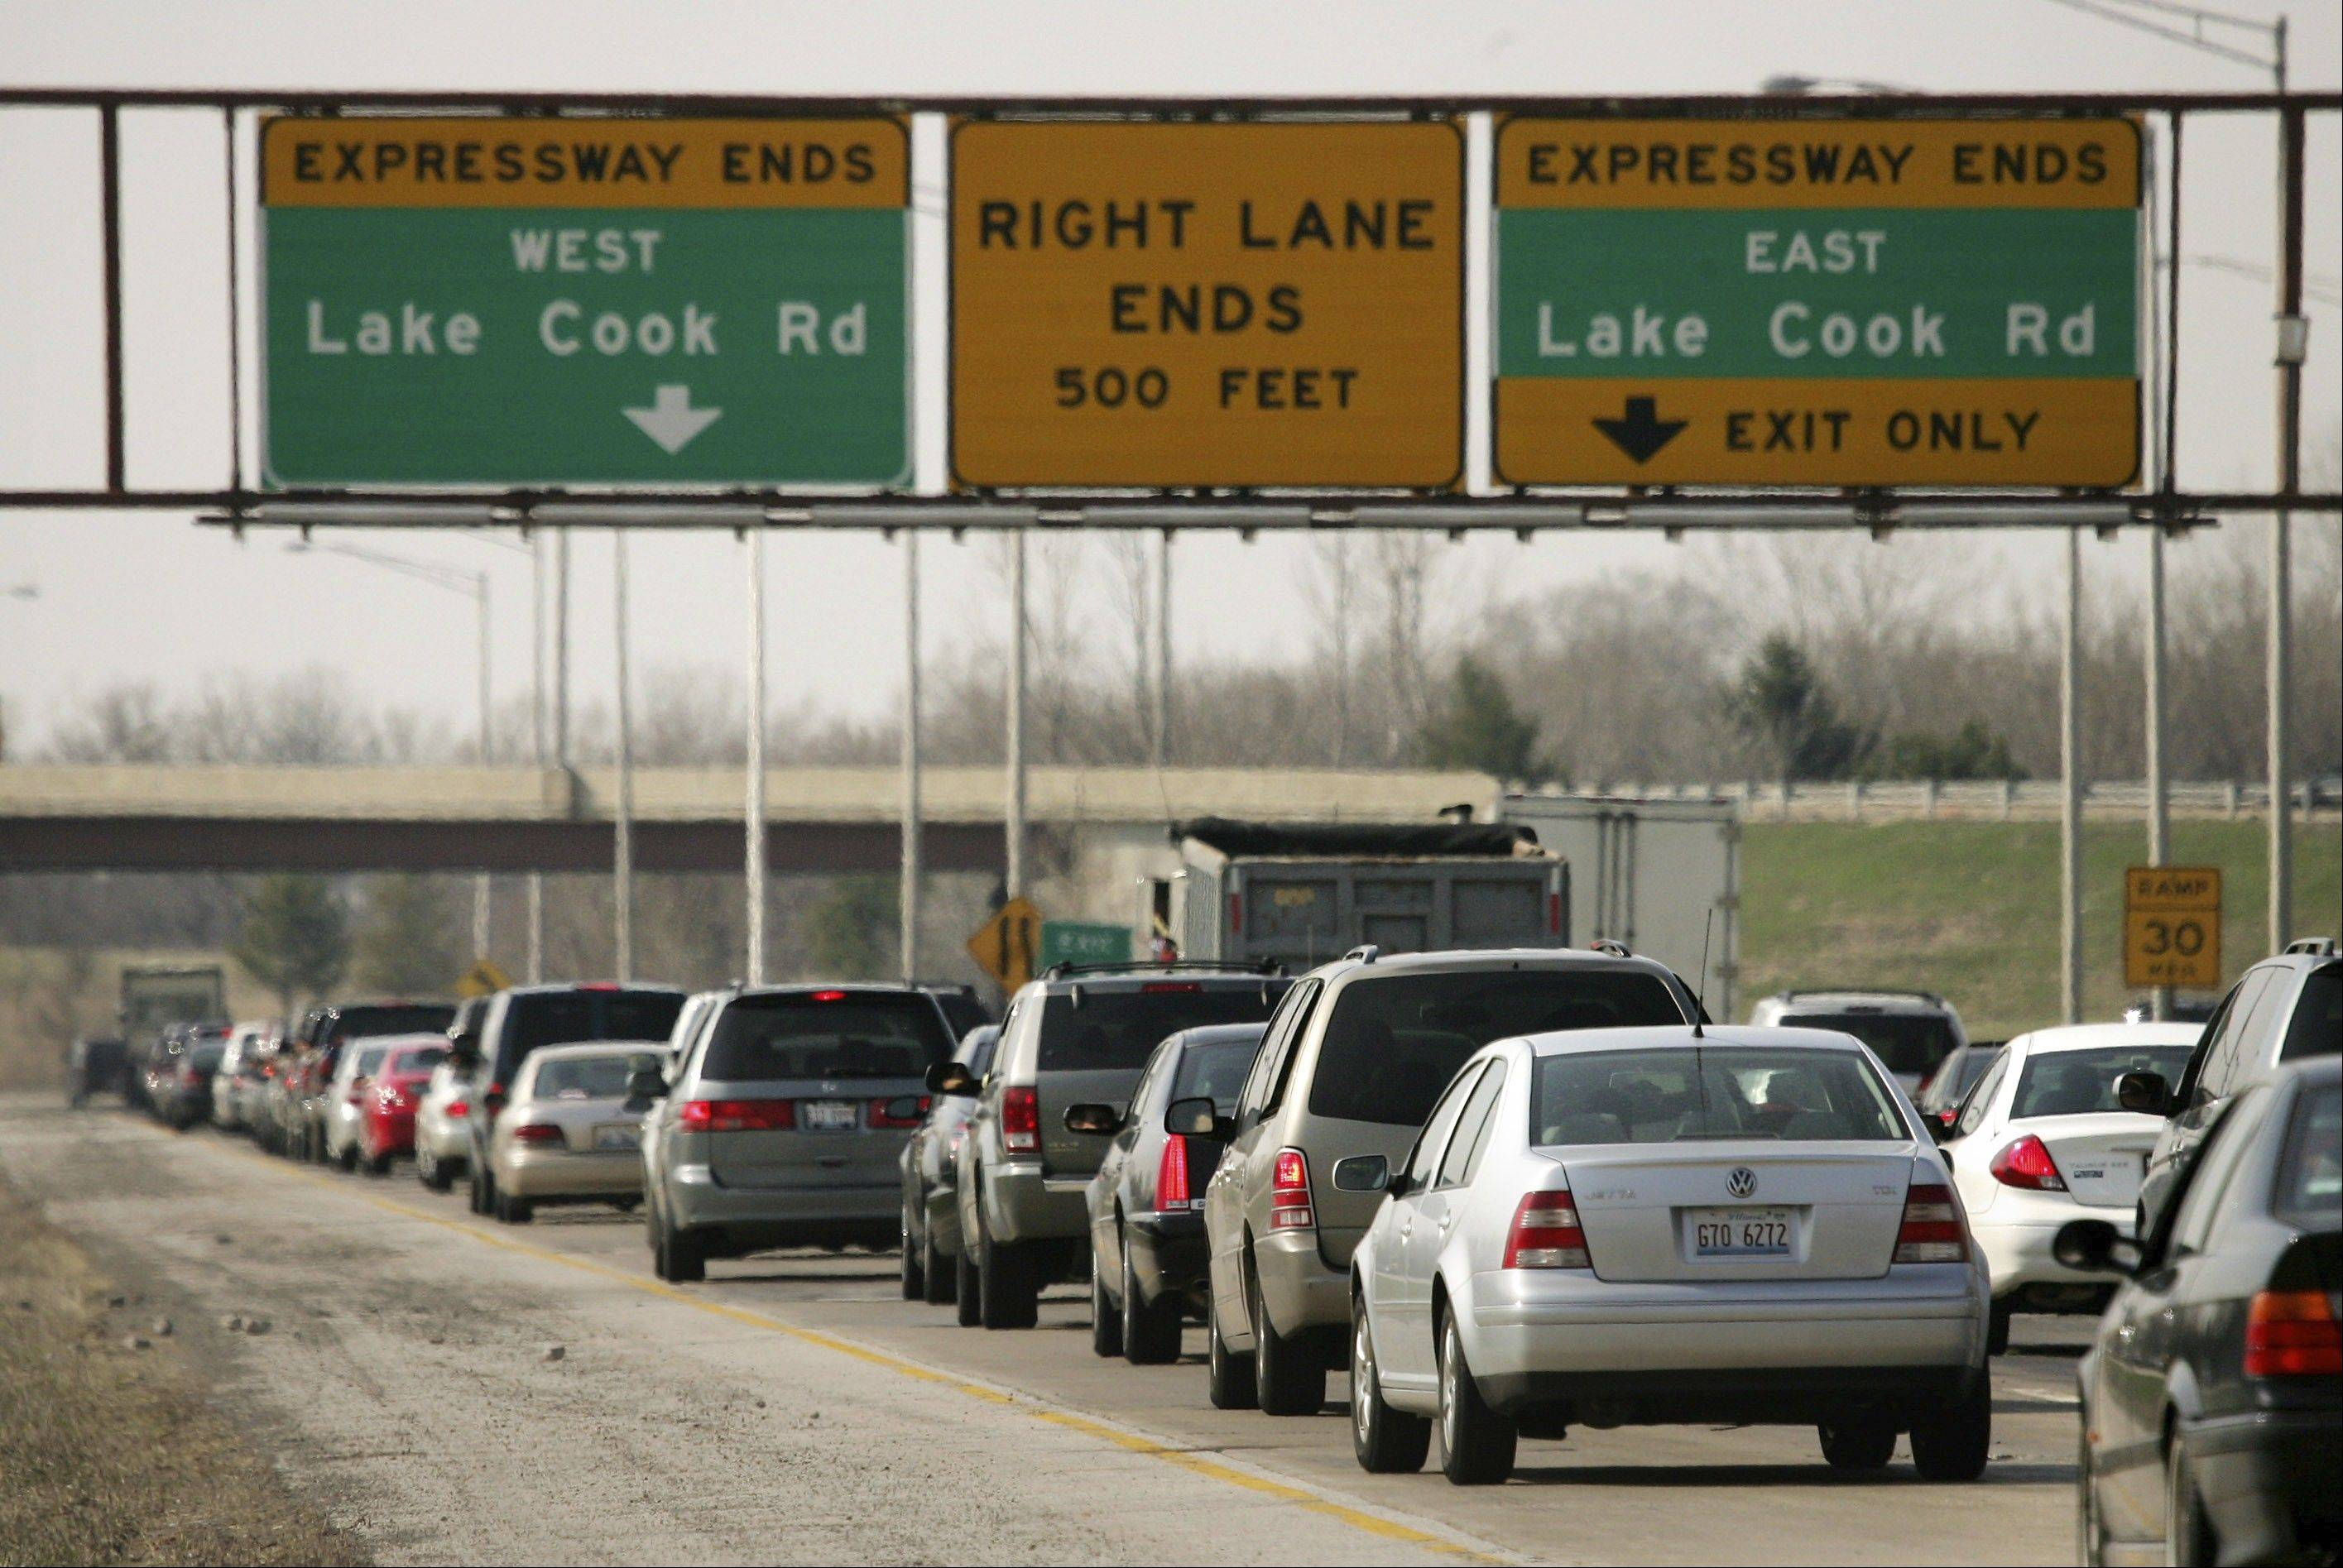 Will drivers pay to drive on an extended Route 53, which now ends at the Lake County border?